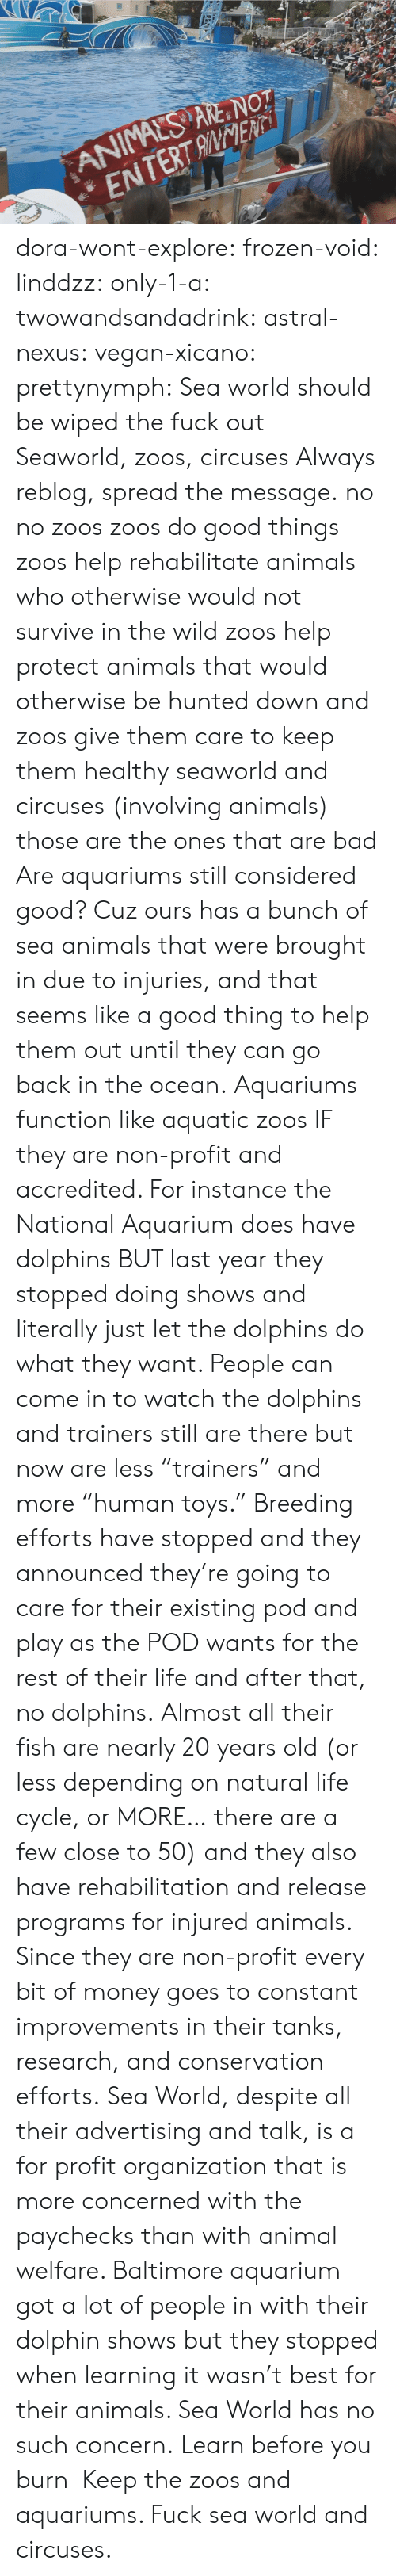 "20 Years: ANIMALS ARE NOT  ENTERTANENTi dora-wont-explore:   frozen-void:  linddzz:  only-1-a:  twowandsandadrink:  astral-nexus:  vegan-xicano:  prettynymph:  Sea world should be wiped the fuck out  Seaworld, zoos, circuses  Always reblog, spread the message.  no no zoos zoos do good things zoos help rehabilitate animals who otherwise would not survive in the wild zoos help protect animals that would otherwise be hunted down and zoos give them care to keep them healthy seaworld and circuses (involving animals) those are the ones that are bad  Are aquariums still considered good? Cuz ours has a bunch of sea animals that were brought in due to injuries, and that seems like a good thing to help them out until they can go back in the ocean.  Aquariums function like aquatic zoos IF they are non-profit and accredited. For instance the National Aquarium does have dolphins BUT last year they stopped doing shows and literally just let the dolphins do what they want. People can come in to watch the dolphins and trainers still are there but now are less ""trainers"" and more ""human toys."" Breeding efforts have stopped and they announced they're going to care for their existing pod and play as the POD wants for the rest of their life and after that, no dolphins. Almost all their fish are nearly 20 years old (or less depending on natural life cycle, or MORE… there are a few close to 50) and they also have rehabilitation and release programs for injured animals. Since they are non-profit every bit of money goes to constant improvements in their tanks, research, and conservation efforts. Sea World, despite all their advertising and talk, is a for profit organization that is more concerned with the paychecks than with animal welfare. Baltimore aquarium got a lot of people in with their dolphin shows but they stopped when learning it wasn't best for their animals. Sea World has no such concern.  Learn before you burn   Keep the zoos and aquariums. Fuck sea world and circuses."